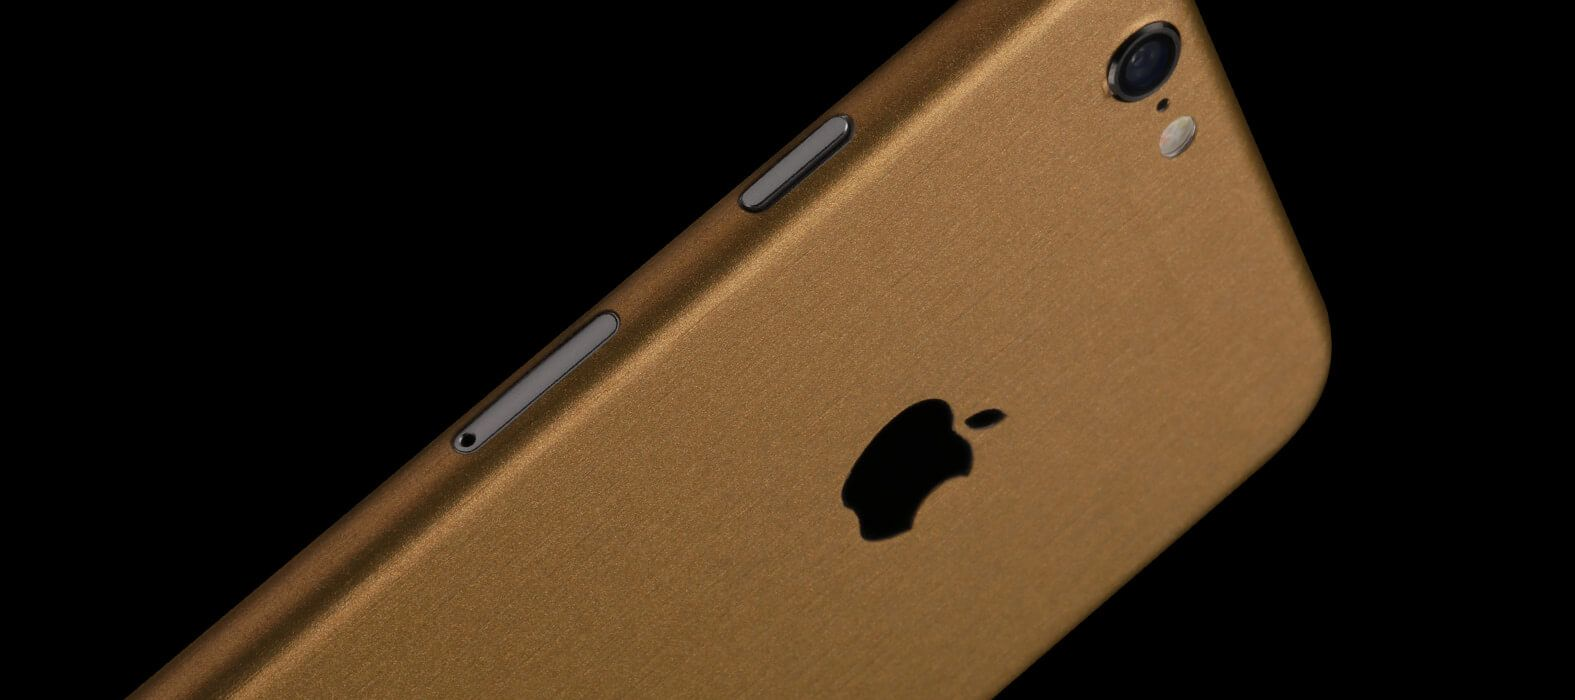 iPhone 6 Plus Skins, Wraps & decals - Brushed Gold